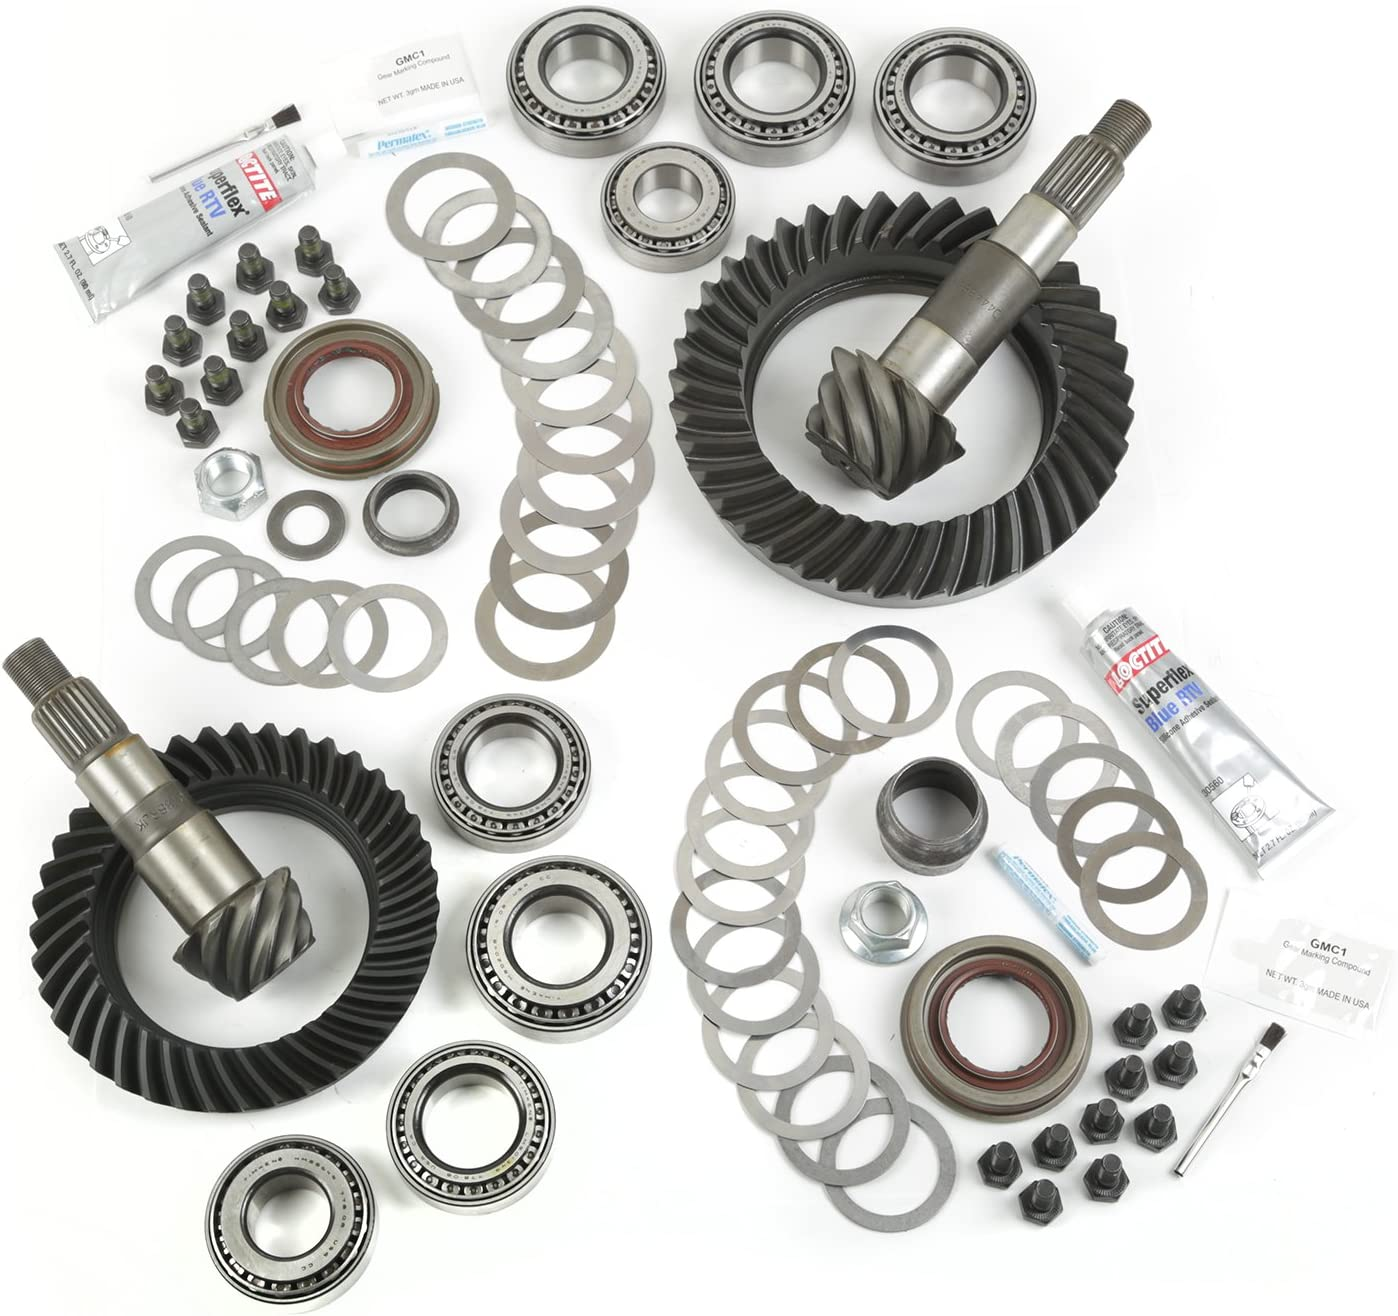 Alloy USA 360003 4.88 Ratio Ring and Max 79% OFF specialty shop for Kit Dana Da 30 Pinion